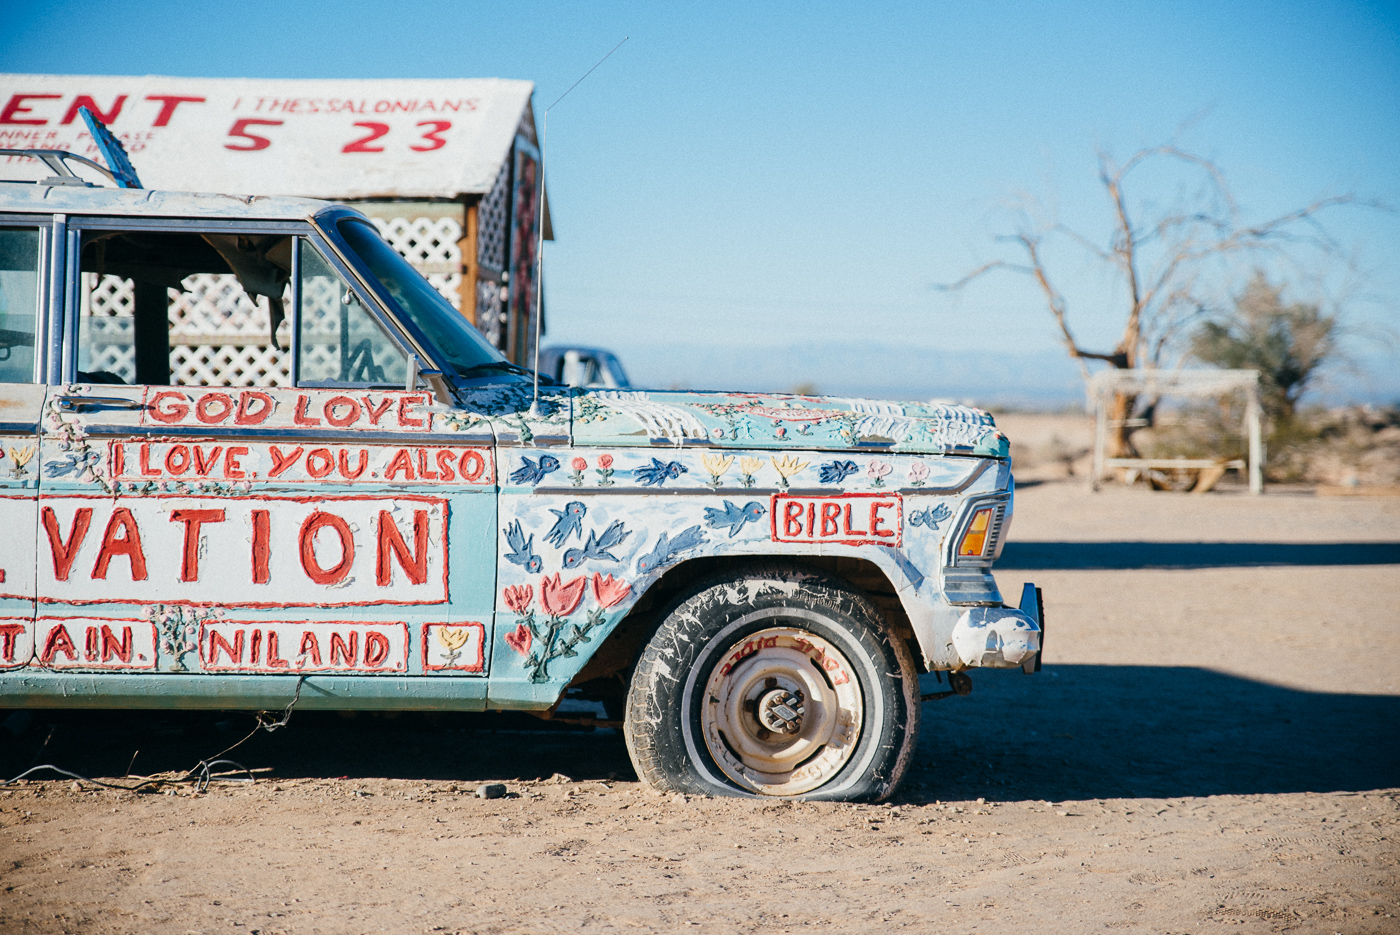 salvation mountain california arizona slab city salton sea vsco nikon america yall pawlowski americayall bible